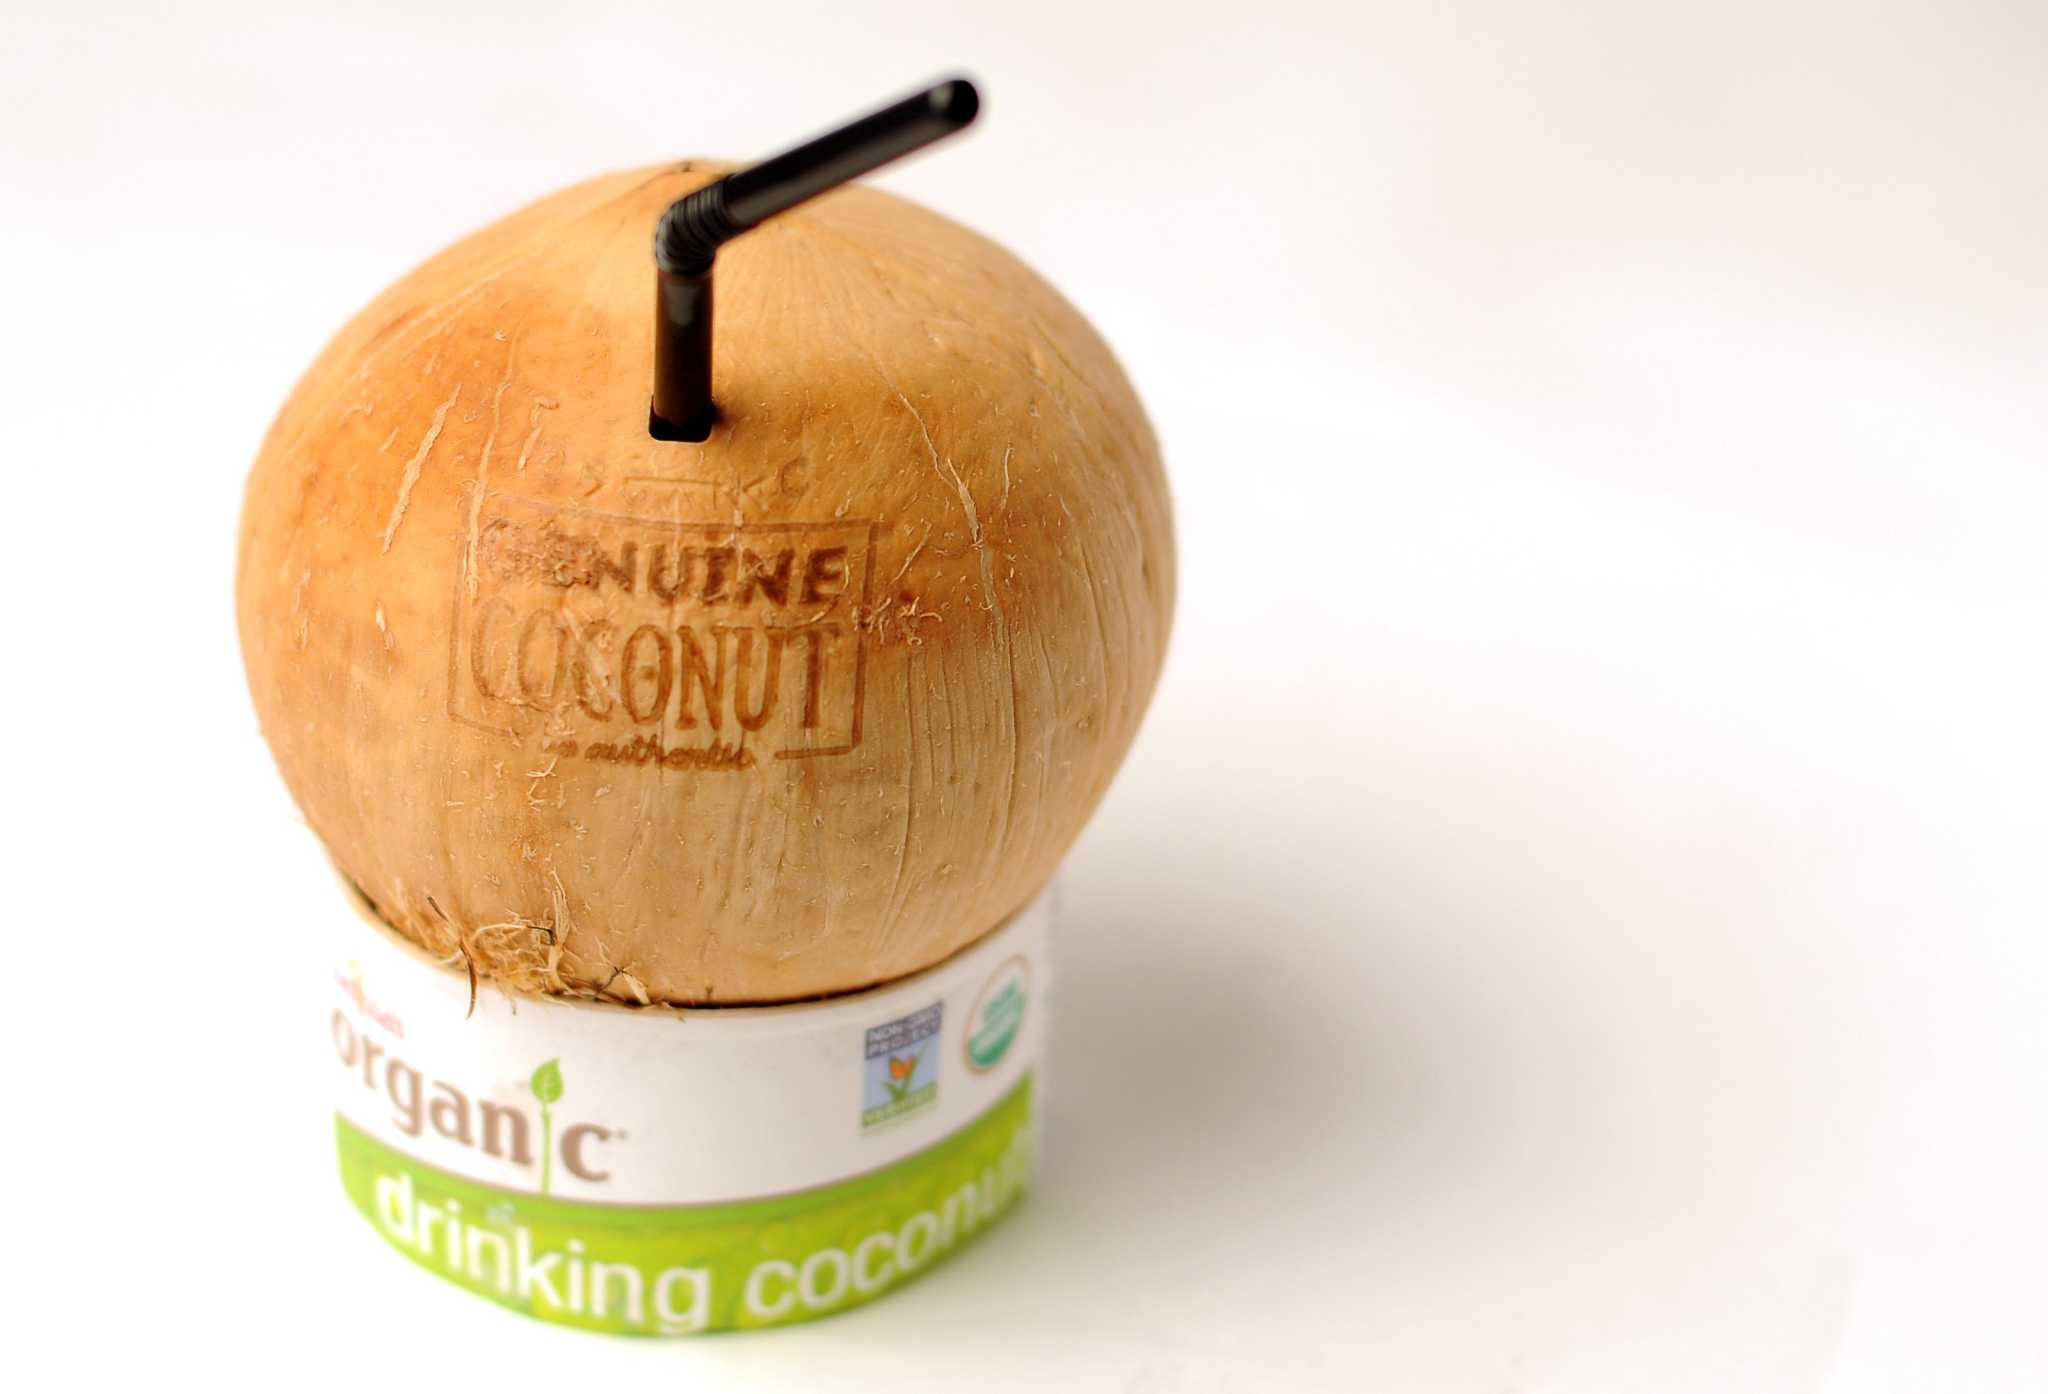 New on the market: Drinking coconuts for sipping and munching